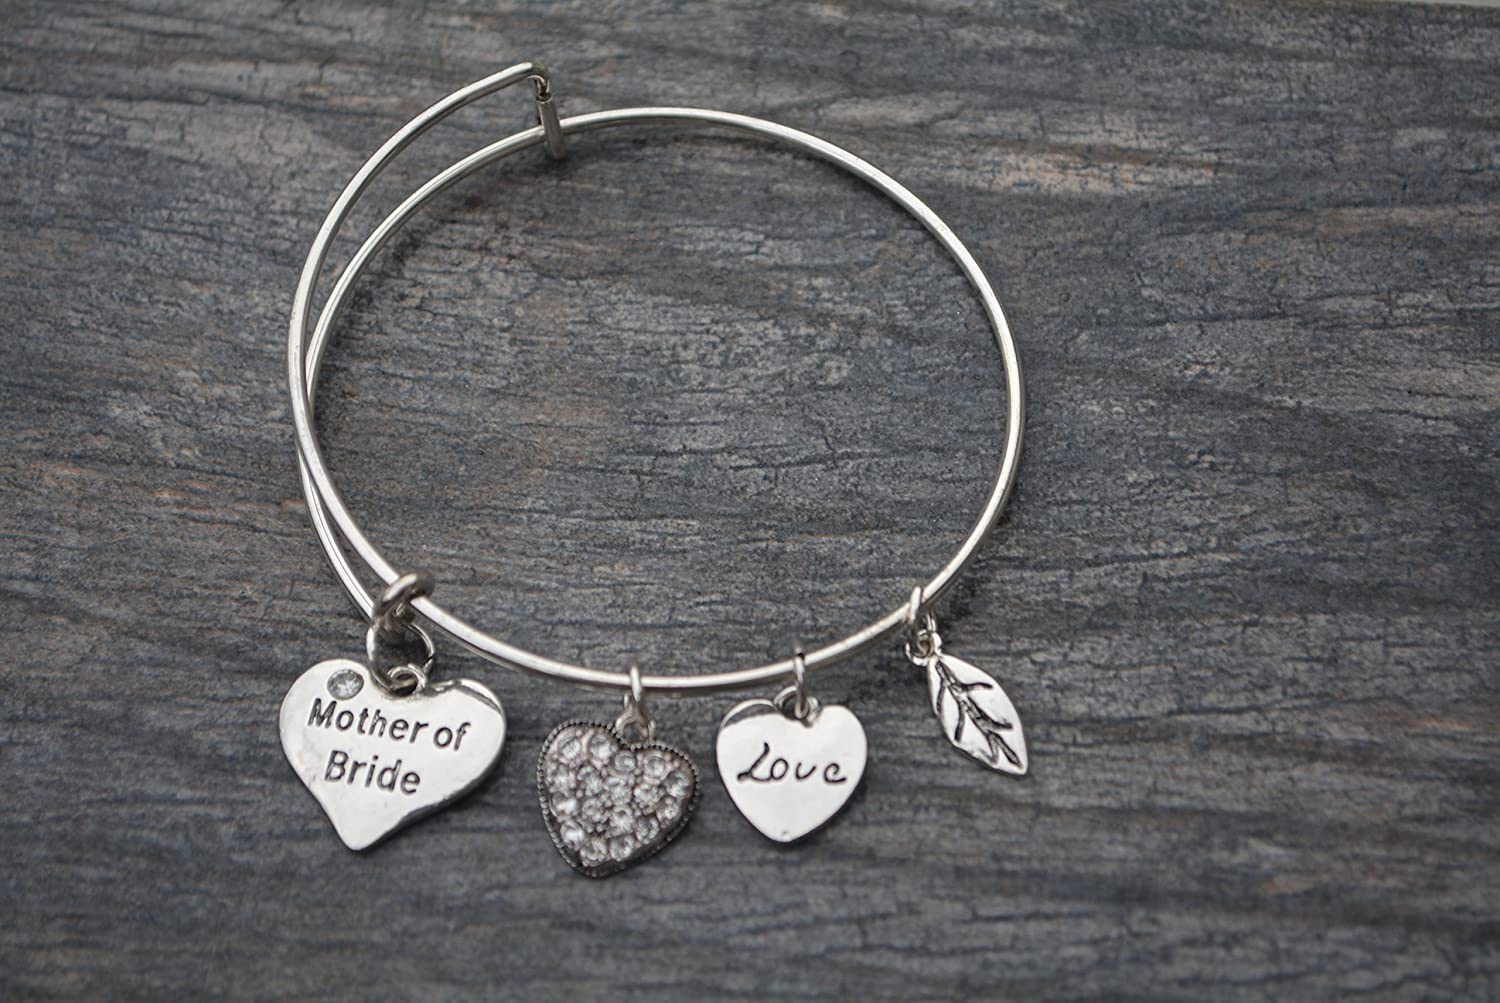 for Mother of The Bride Infinity Collection Mother of The Bride Gift Bracelet Mother of The Bride Jewelry